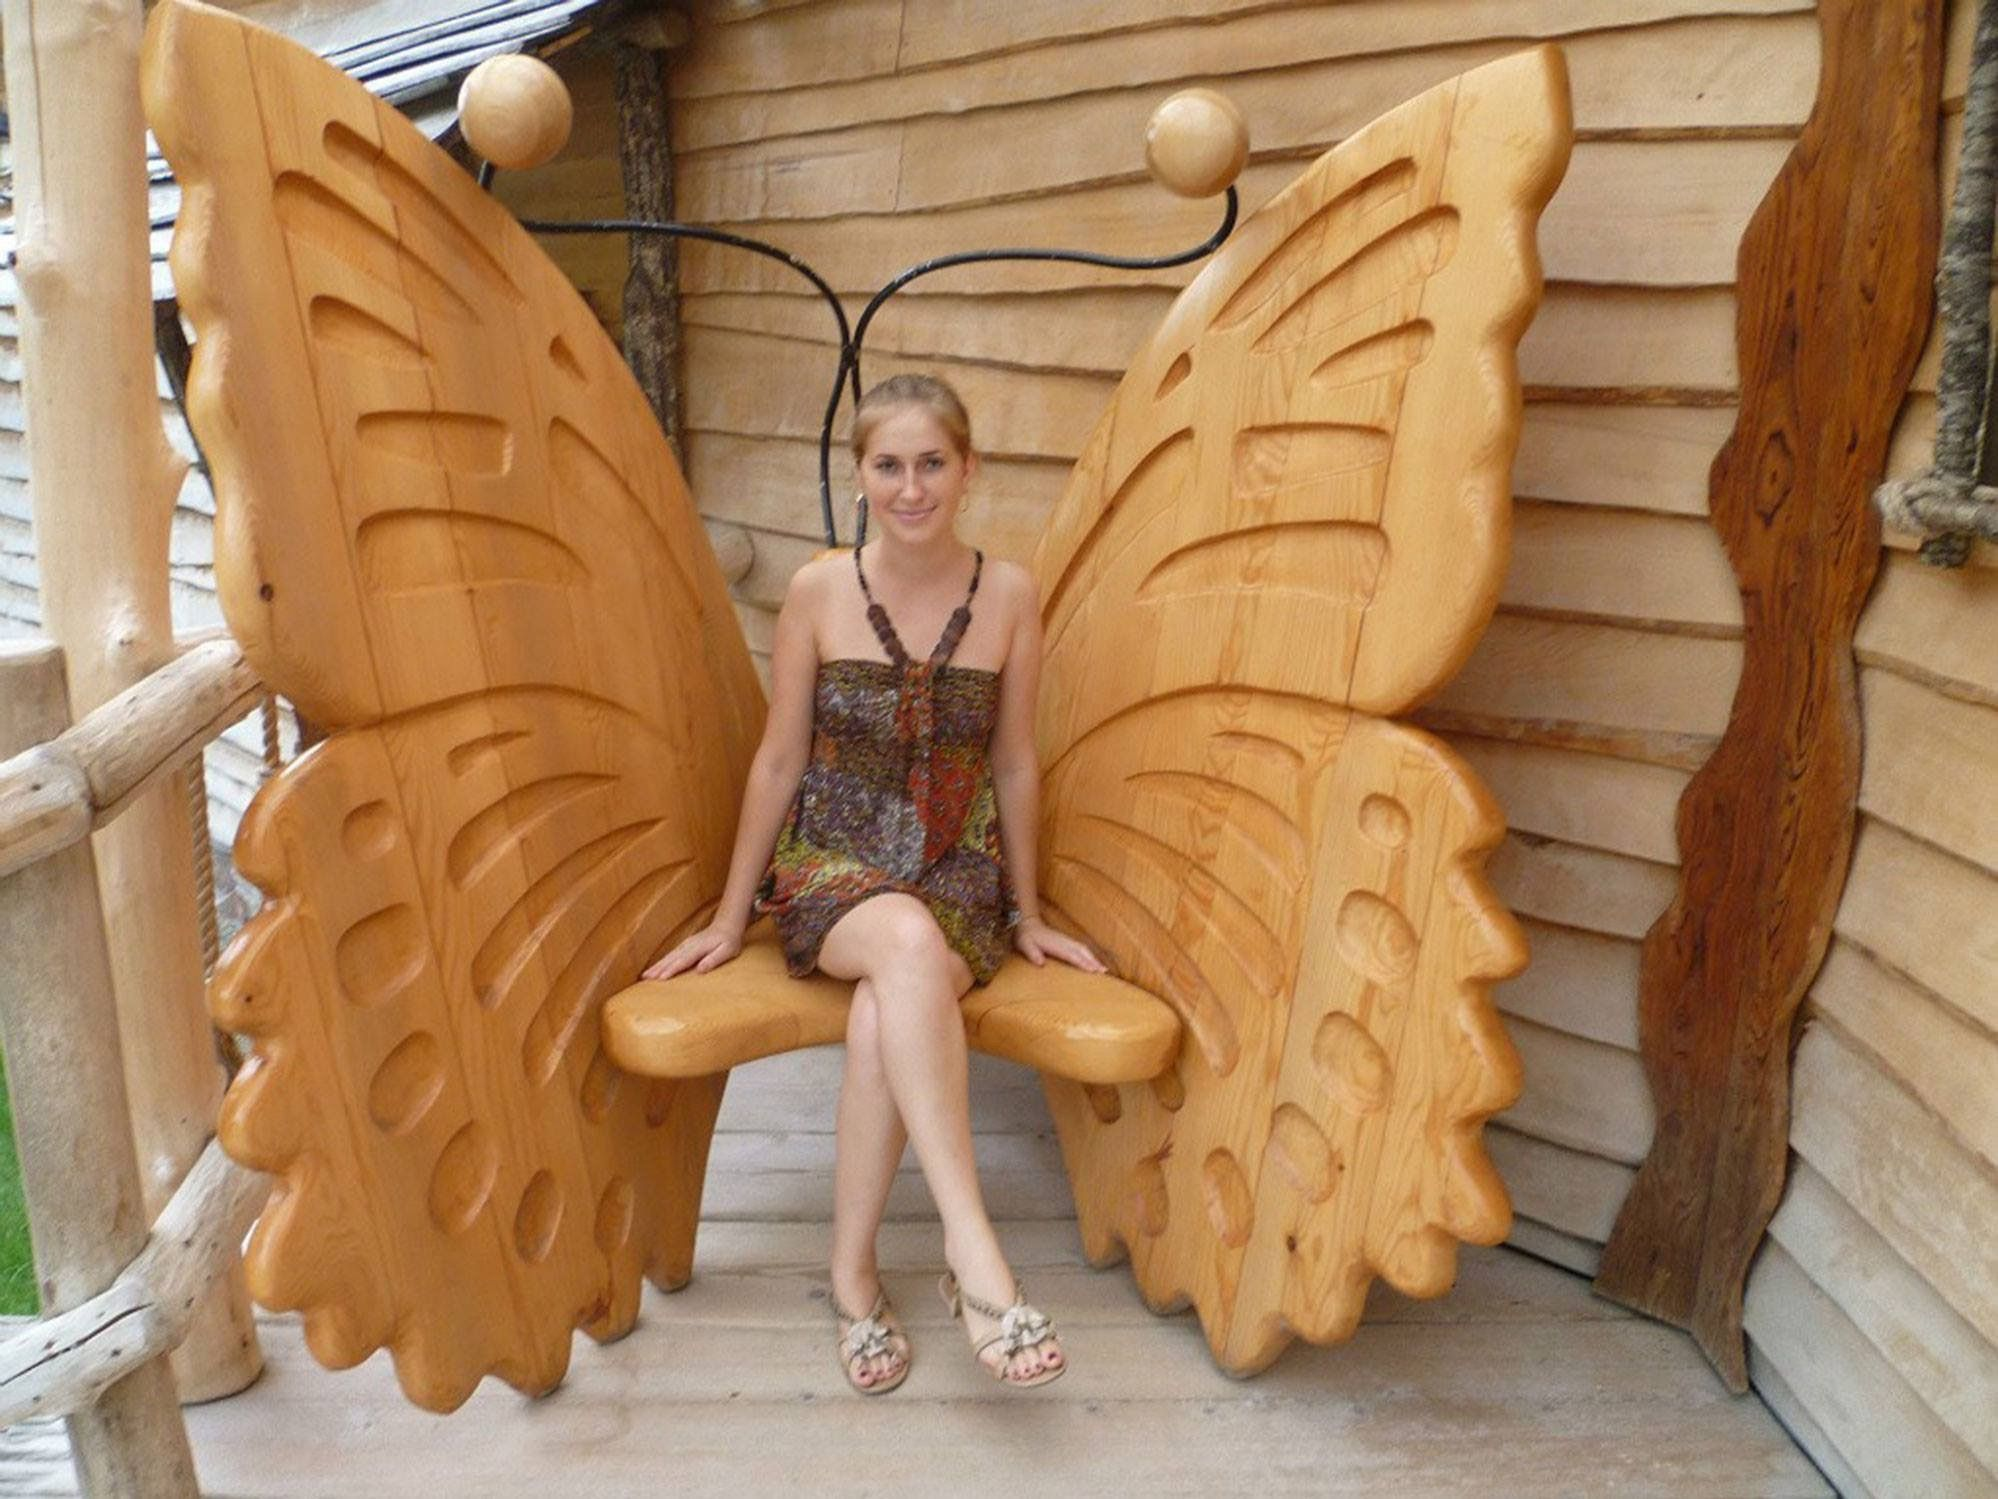 Schnitzereien Mit Der Kettensäge Carved Wooden Butterfly Chair | Diy Home Projects | Wood